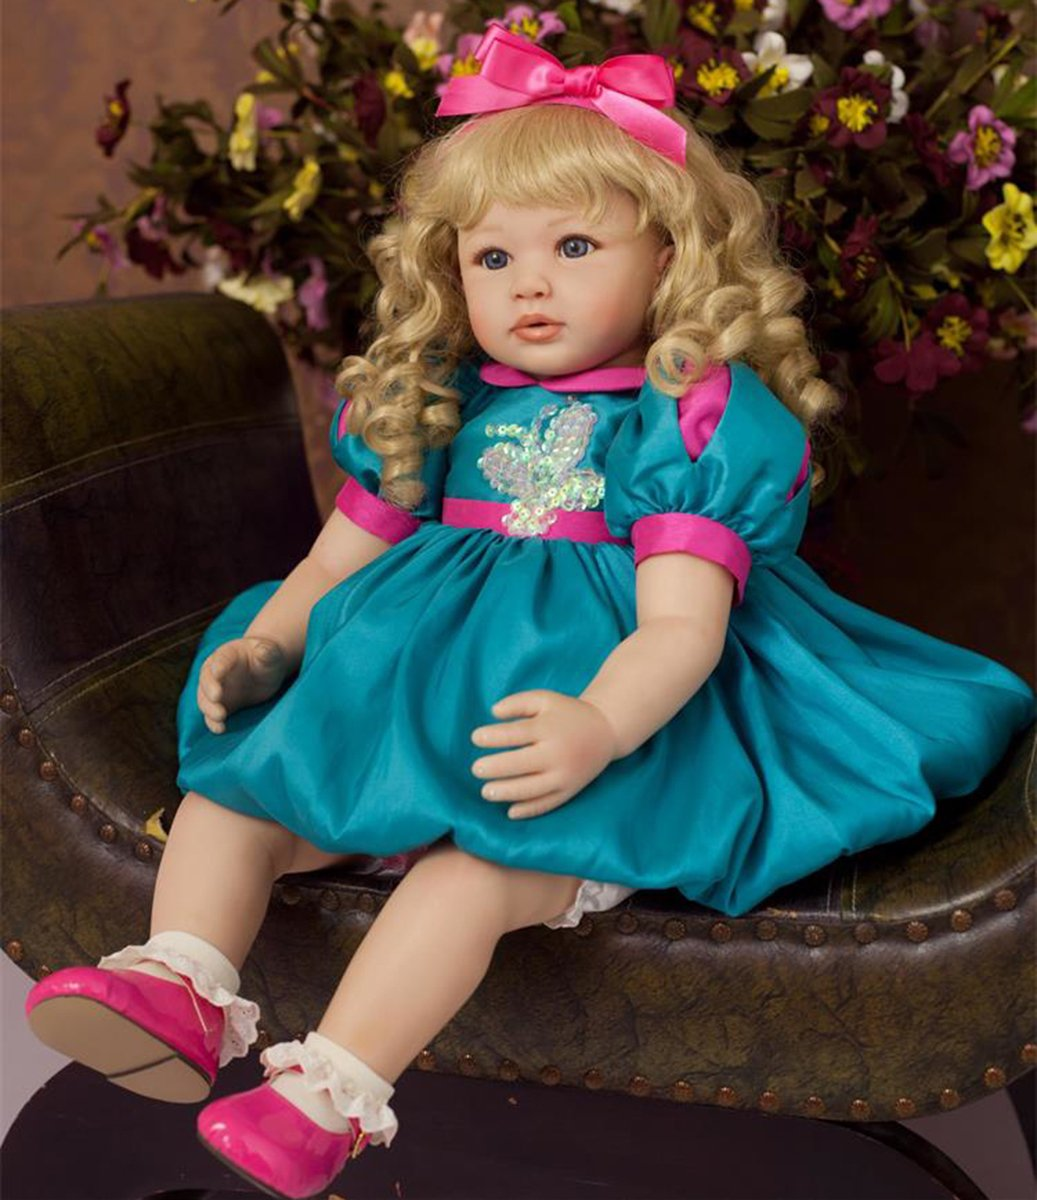 Pursue Baby Beautiful Soft Body Real Looking Princess Girl Doll with Blonde Curly Hair Isabella, 24 Inch Lifelike Weighted Big Toddler Doll with Matching Outfits